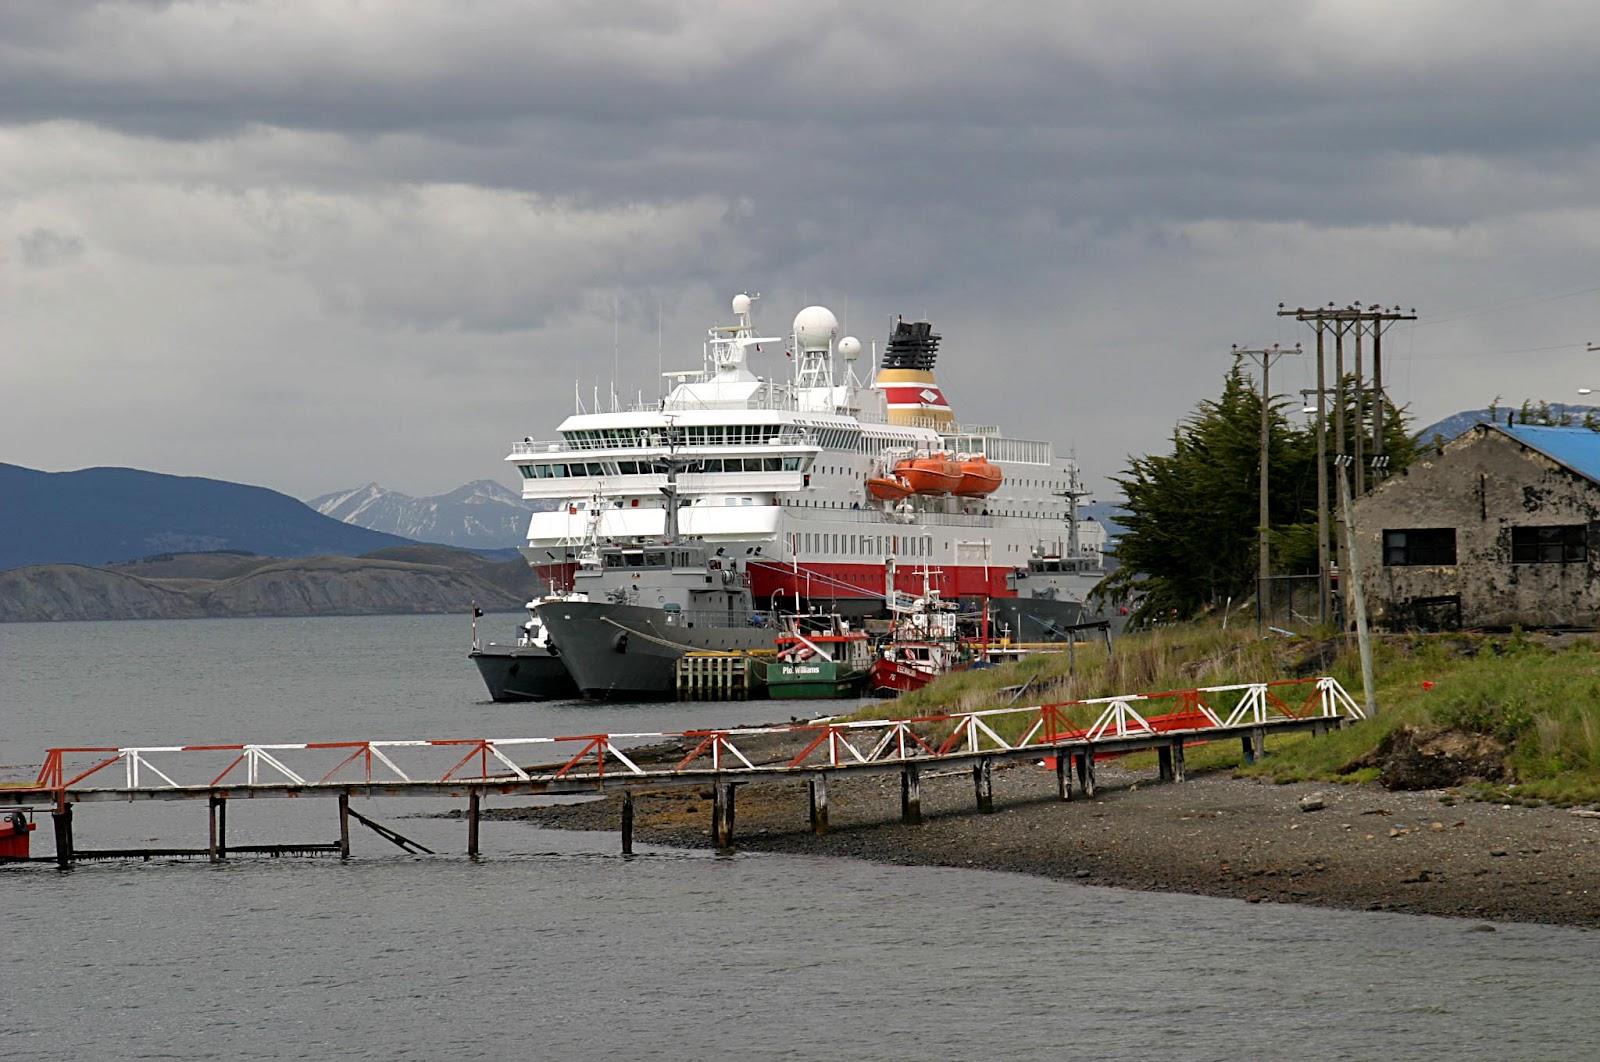 puerto williams chatrooms Browse puerto williams to saint vincent airfares and flight schedules, book puerto williams to saint vincent flights on tripcom and save up to 55% find cheap fares for flights from puerto williams to saint vincent on tripcom and win big giveaways with #tripcom.